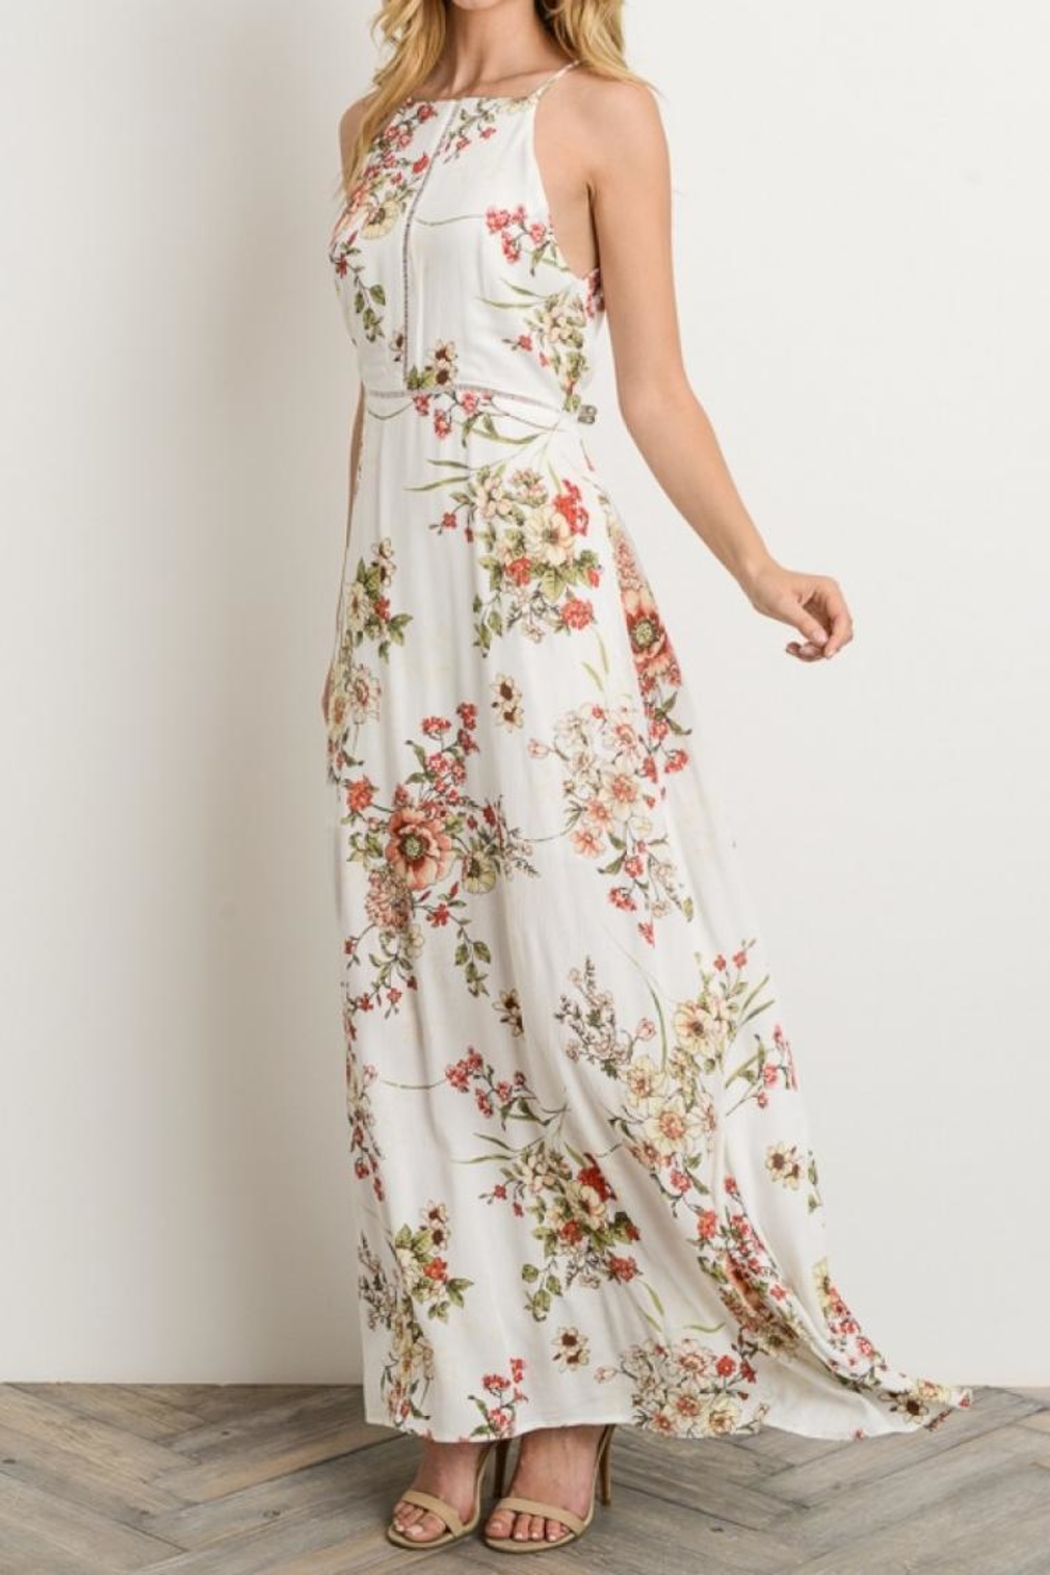 bd86689ab8ba Gilli Ivory Floral Maxi-Dress from Virginia by Sweetest Stitch ...